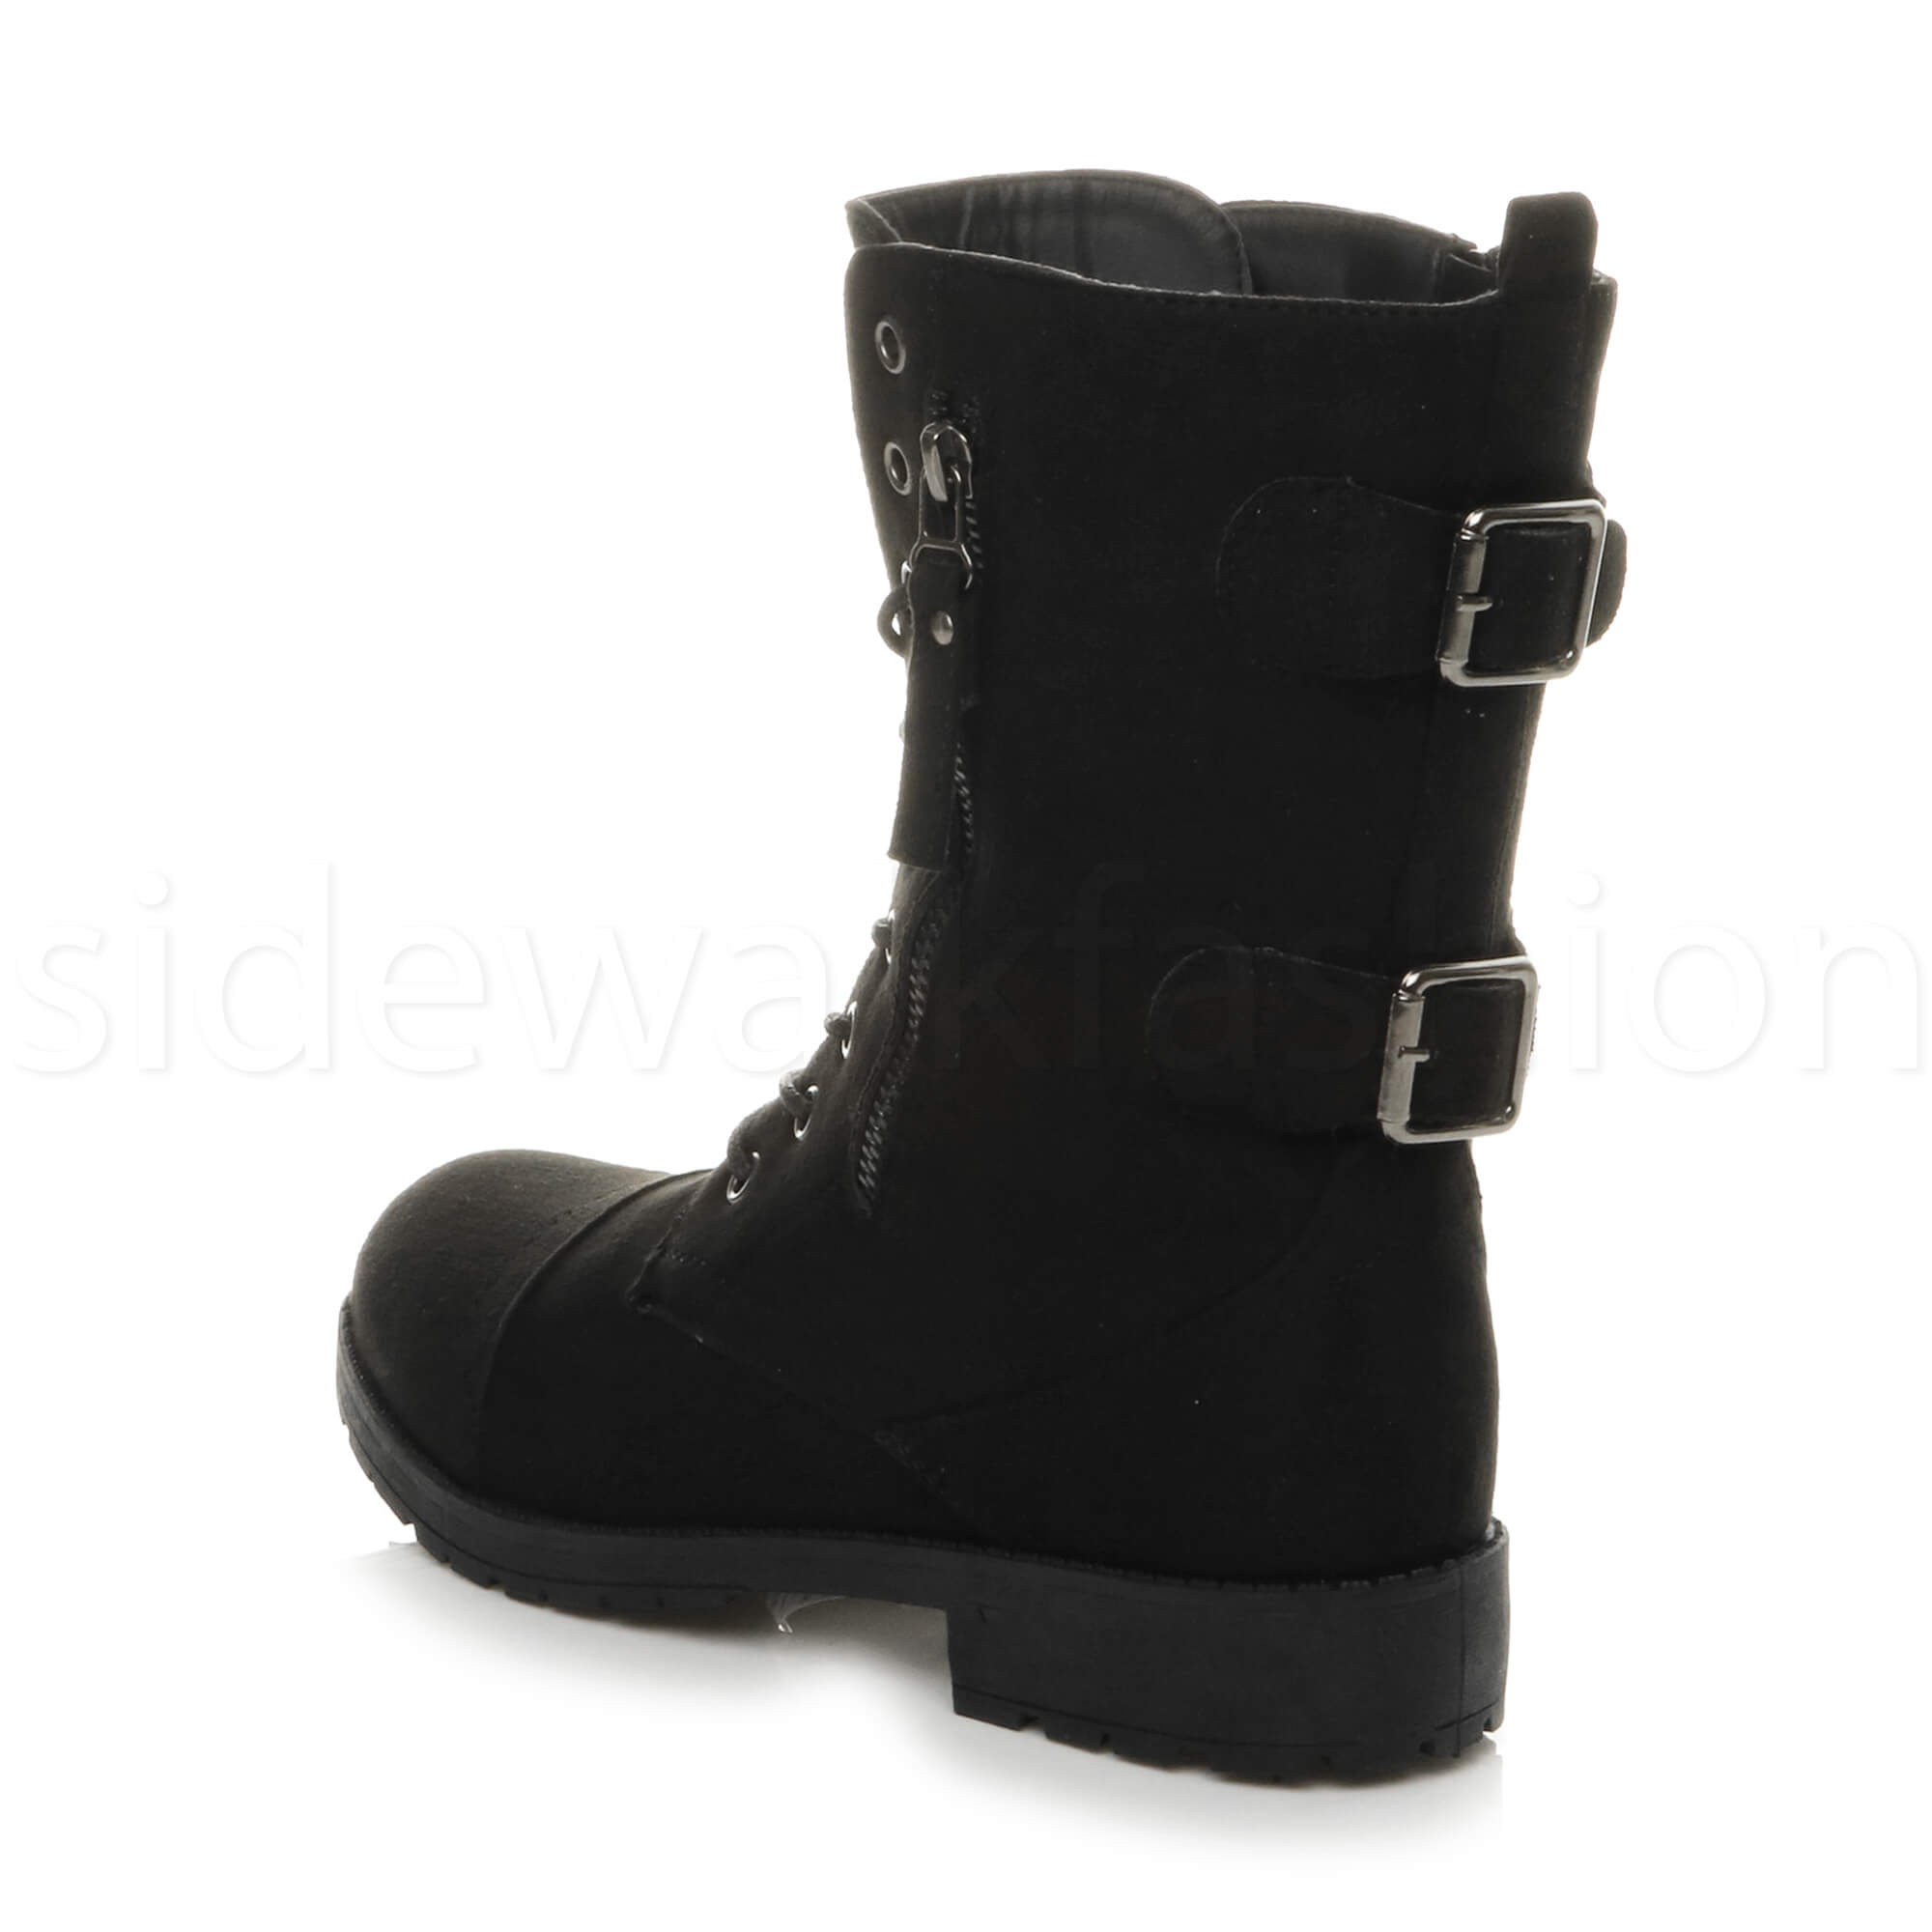 Womens-ladies-low-heel-flat-lace-up-zip-combat-biker-military-ankle-boots-size thumbnail 21